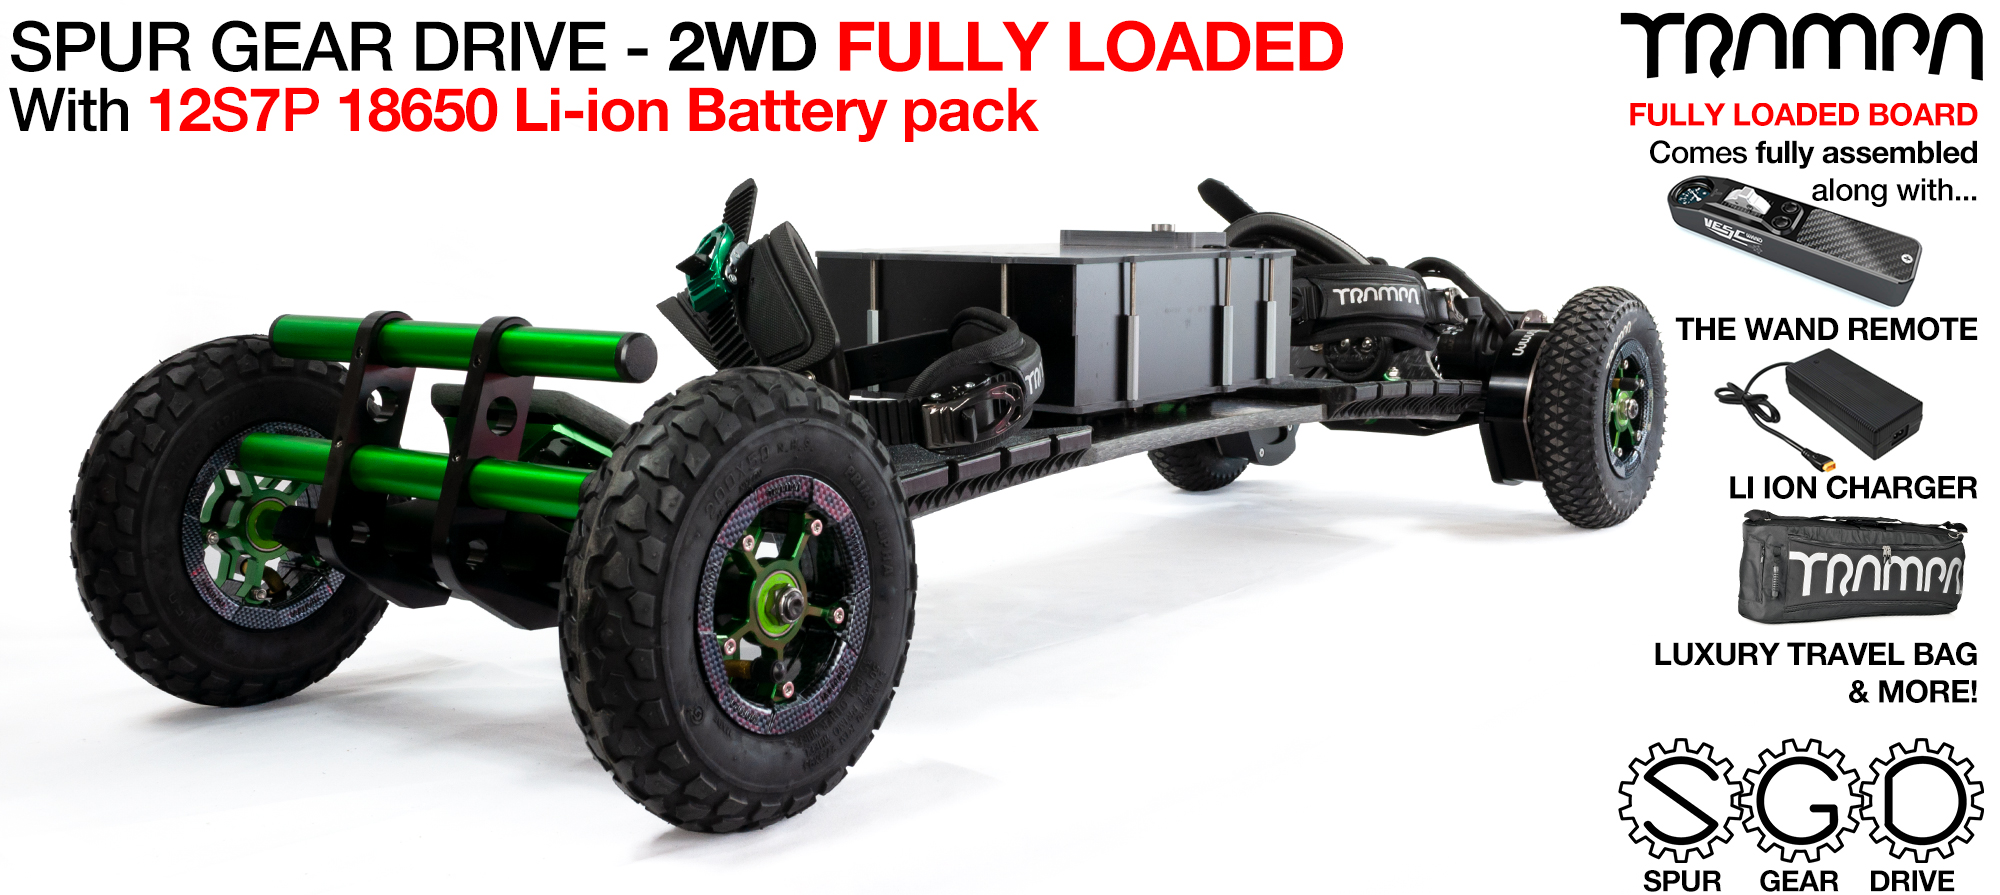 2WD SPUR GEAR DRIVE Electric Mountainboard - FULLY LOADED Cell Pack with 9 inch MEGASTARS on rear 8 inch Megastars on front, Mud-Pluggers supplied with The WAND, 12A Charger & Bull Bars as standard!!